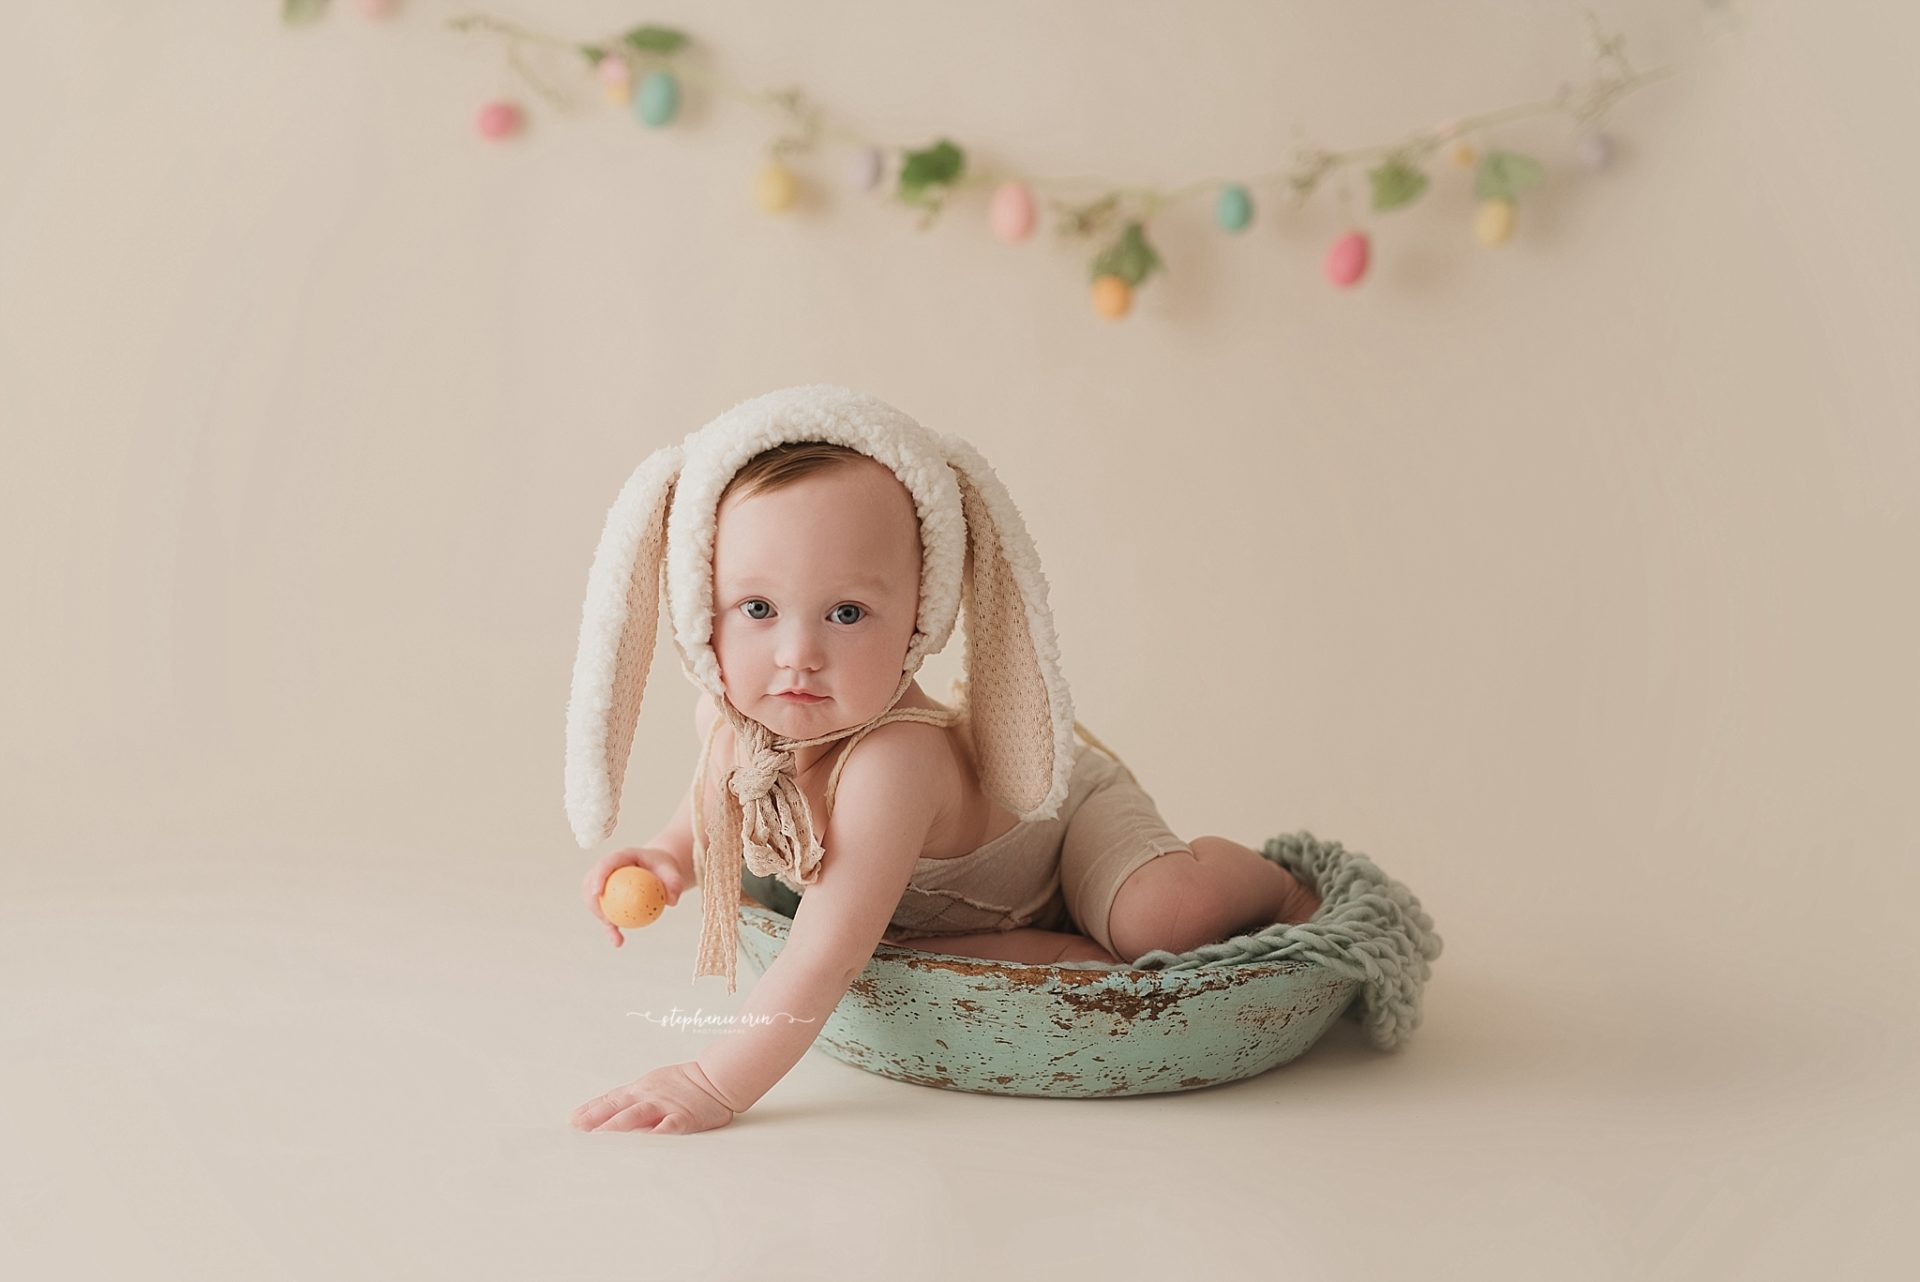 Cohen Easter Photography Session | St George, Utah Newborn Photographer + Southern Utah Newborn Photography Studio | Stephanie Erin Photography